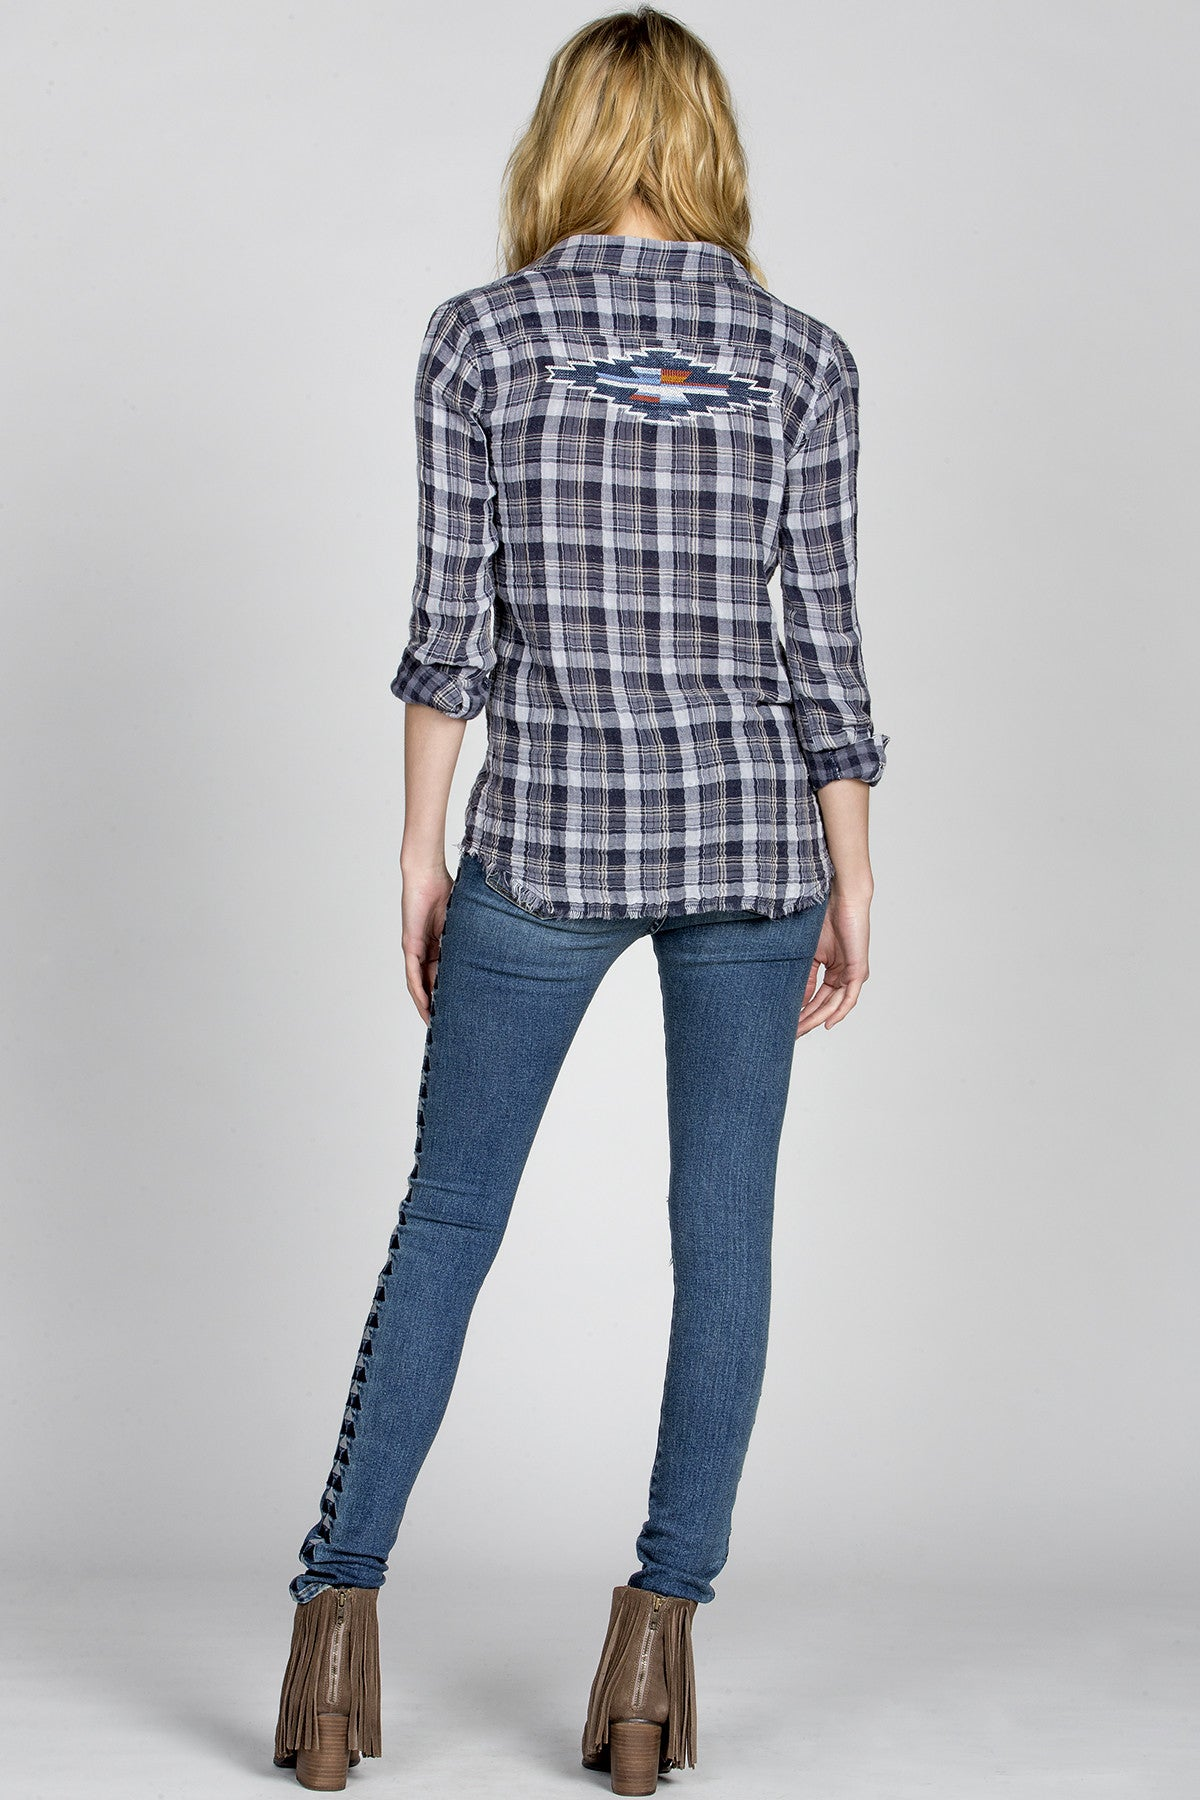 Hidden Charm Plaid Shirt